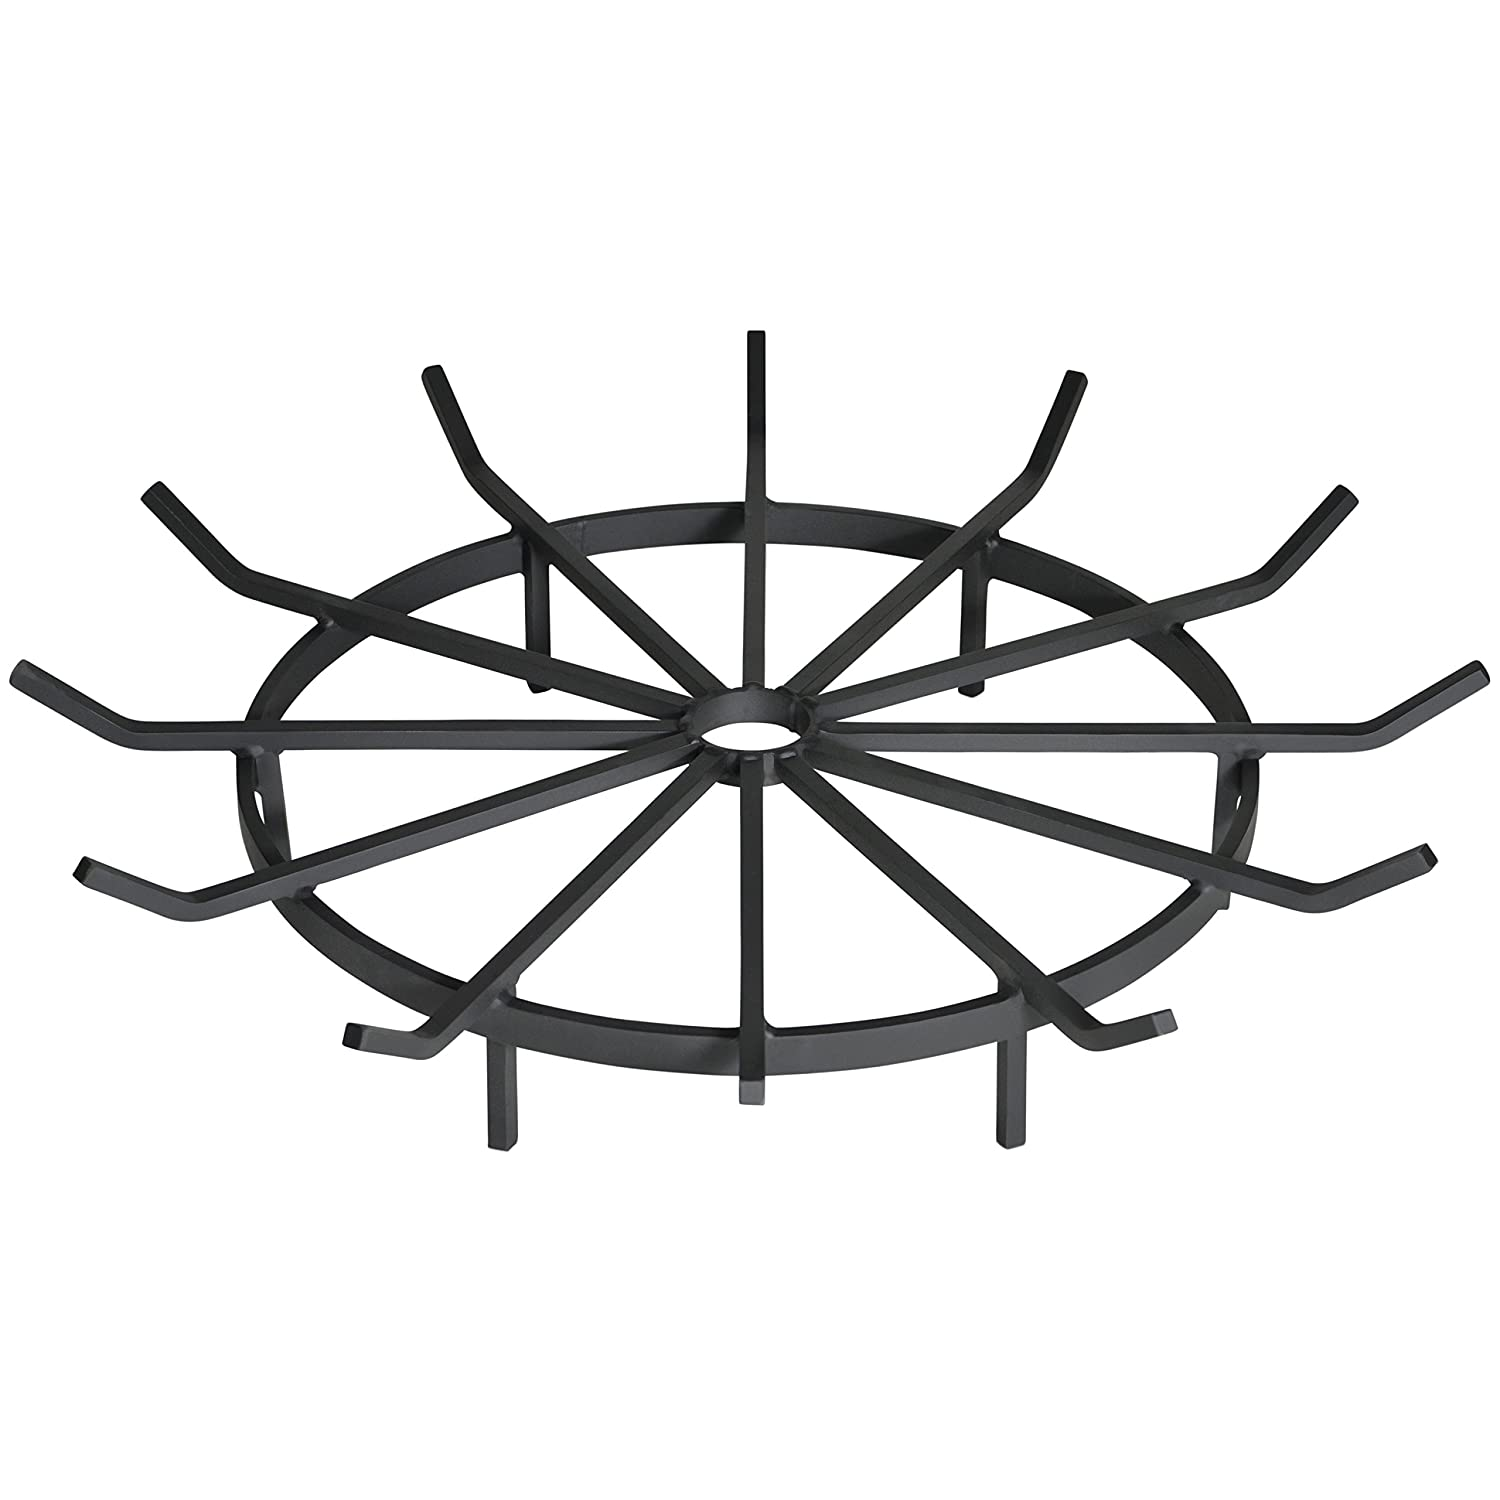 Heritage Products Wagon Wheel Firewood Grate for Fire Pit, Chiminea - Made in the USA (12 Inch) Federated Trade RGS-1208